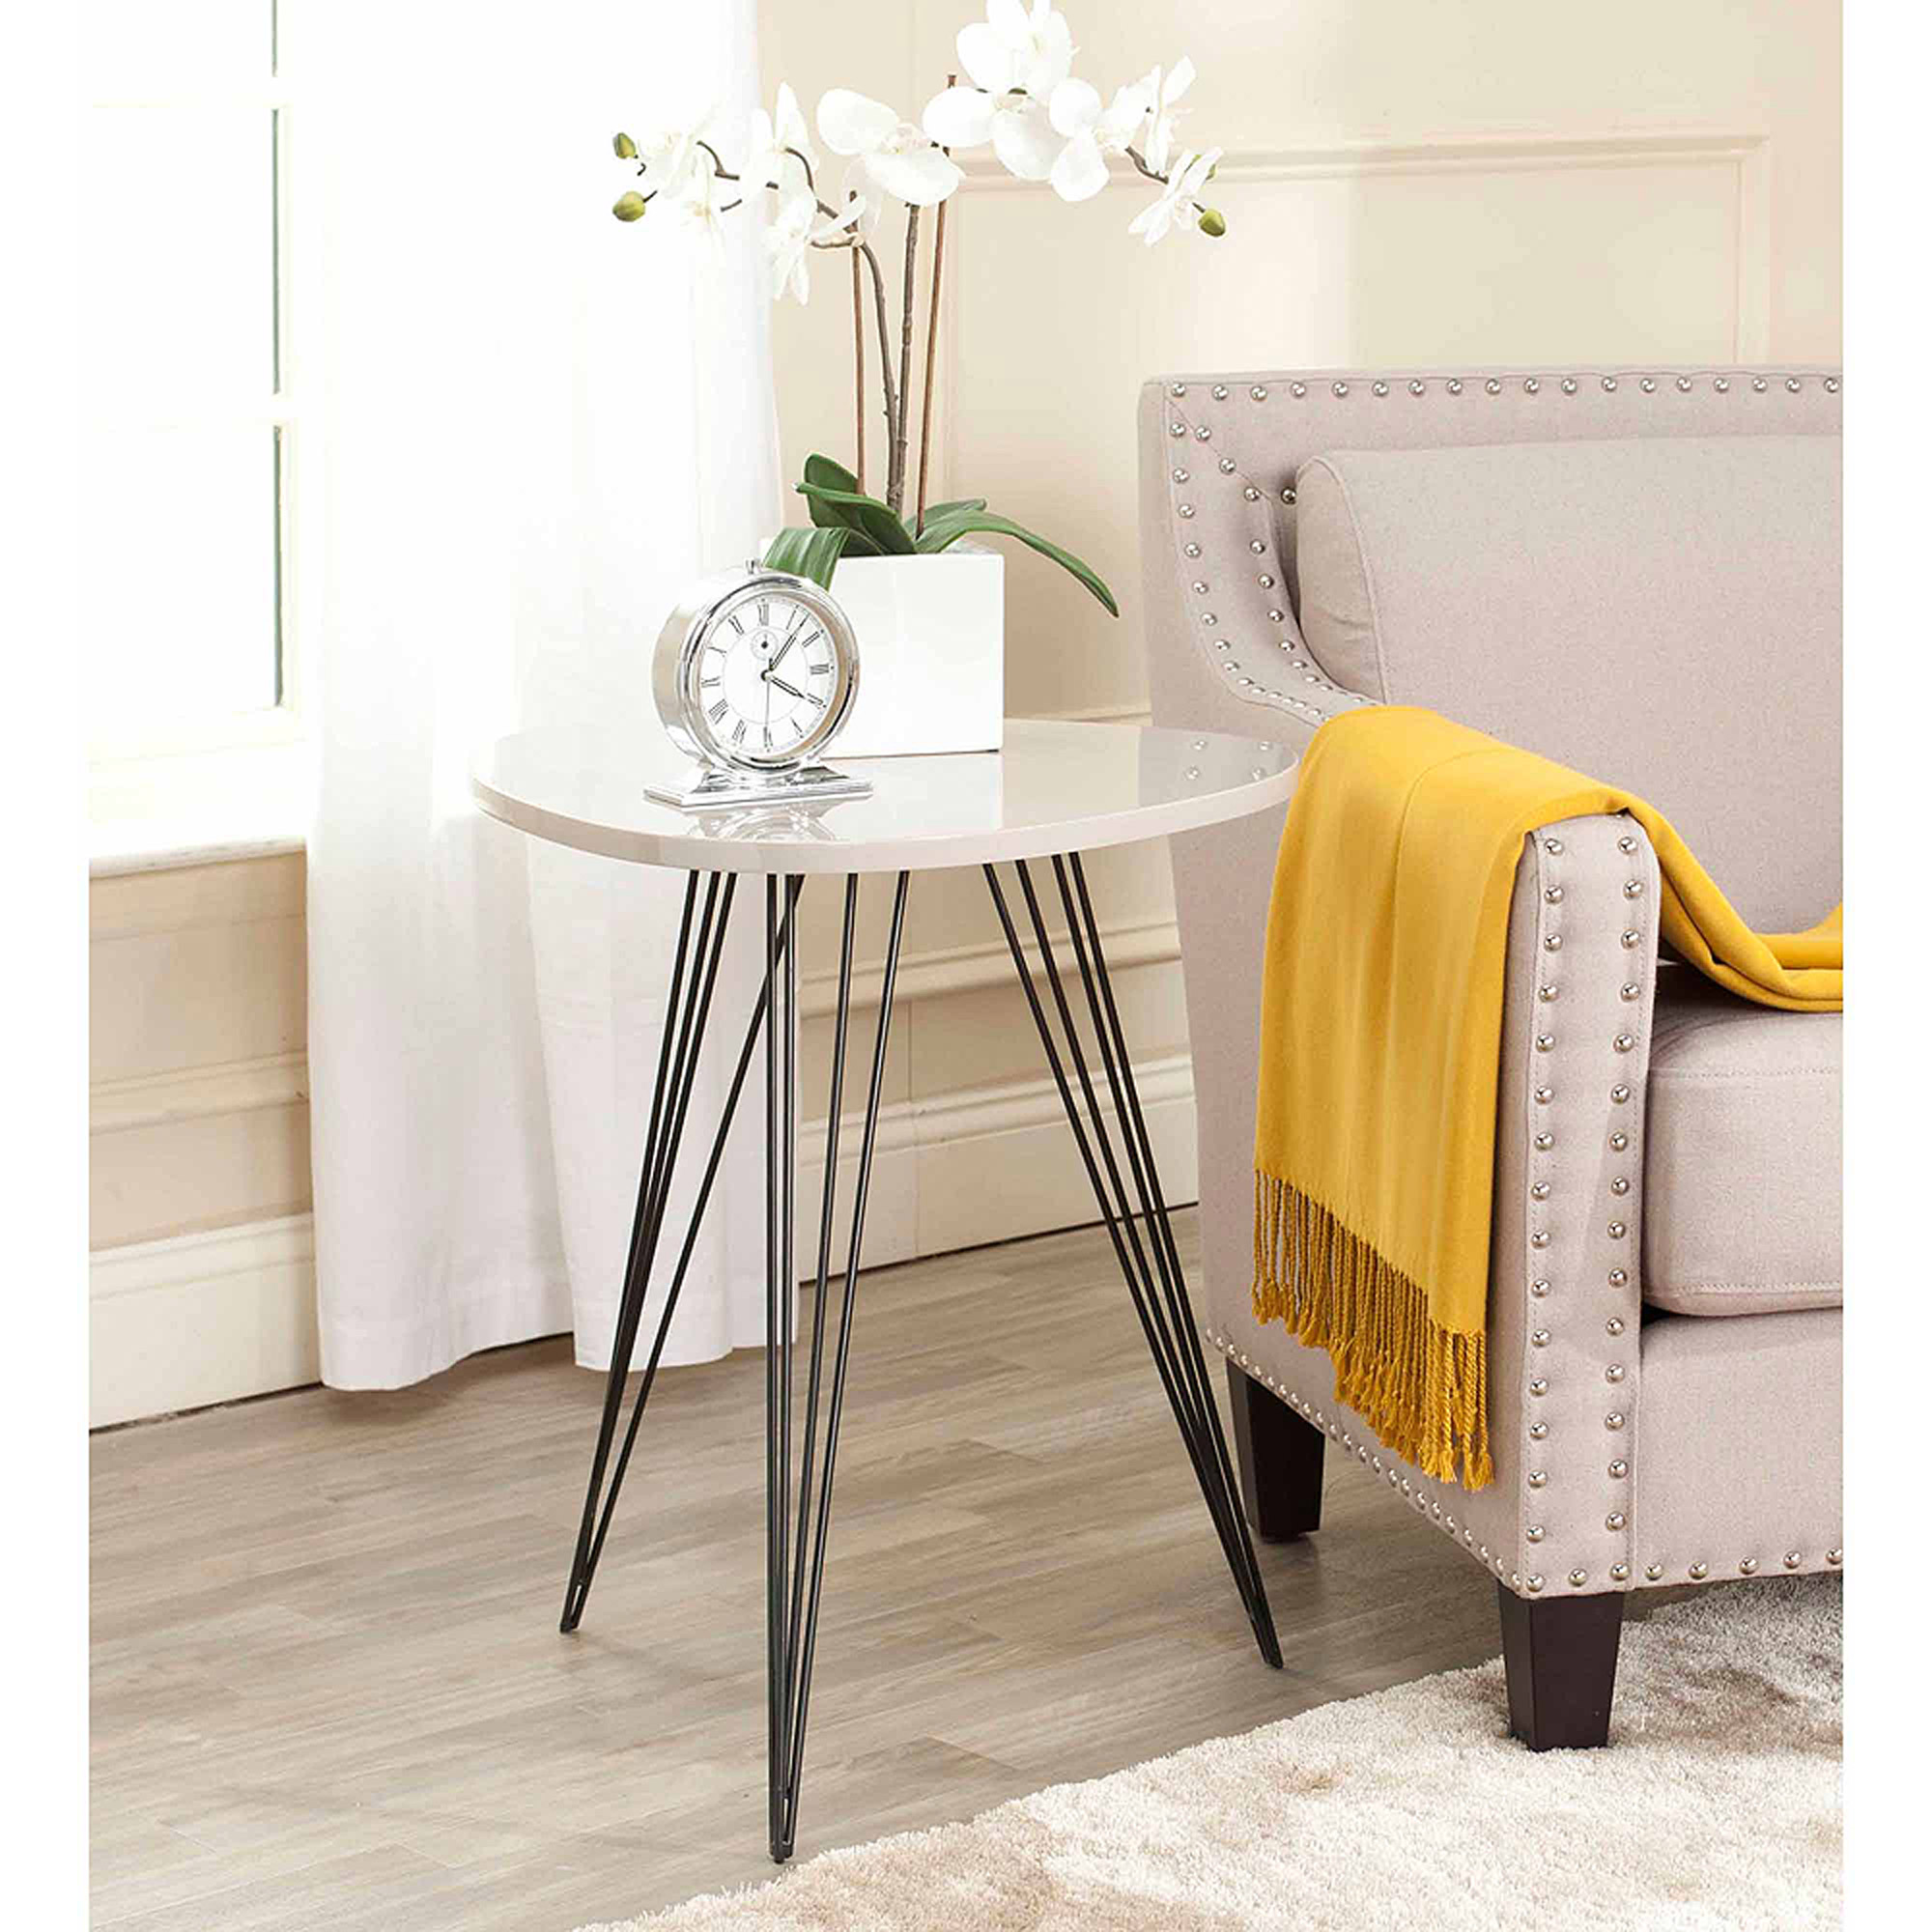 Safavieh Wolcott Lacquer Side Table, Taupe/Black